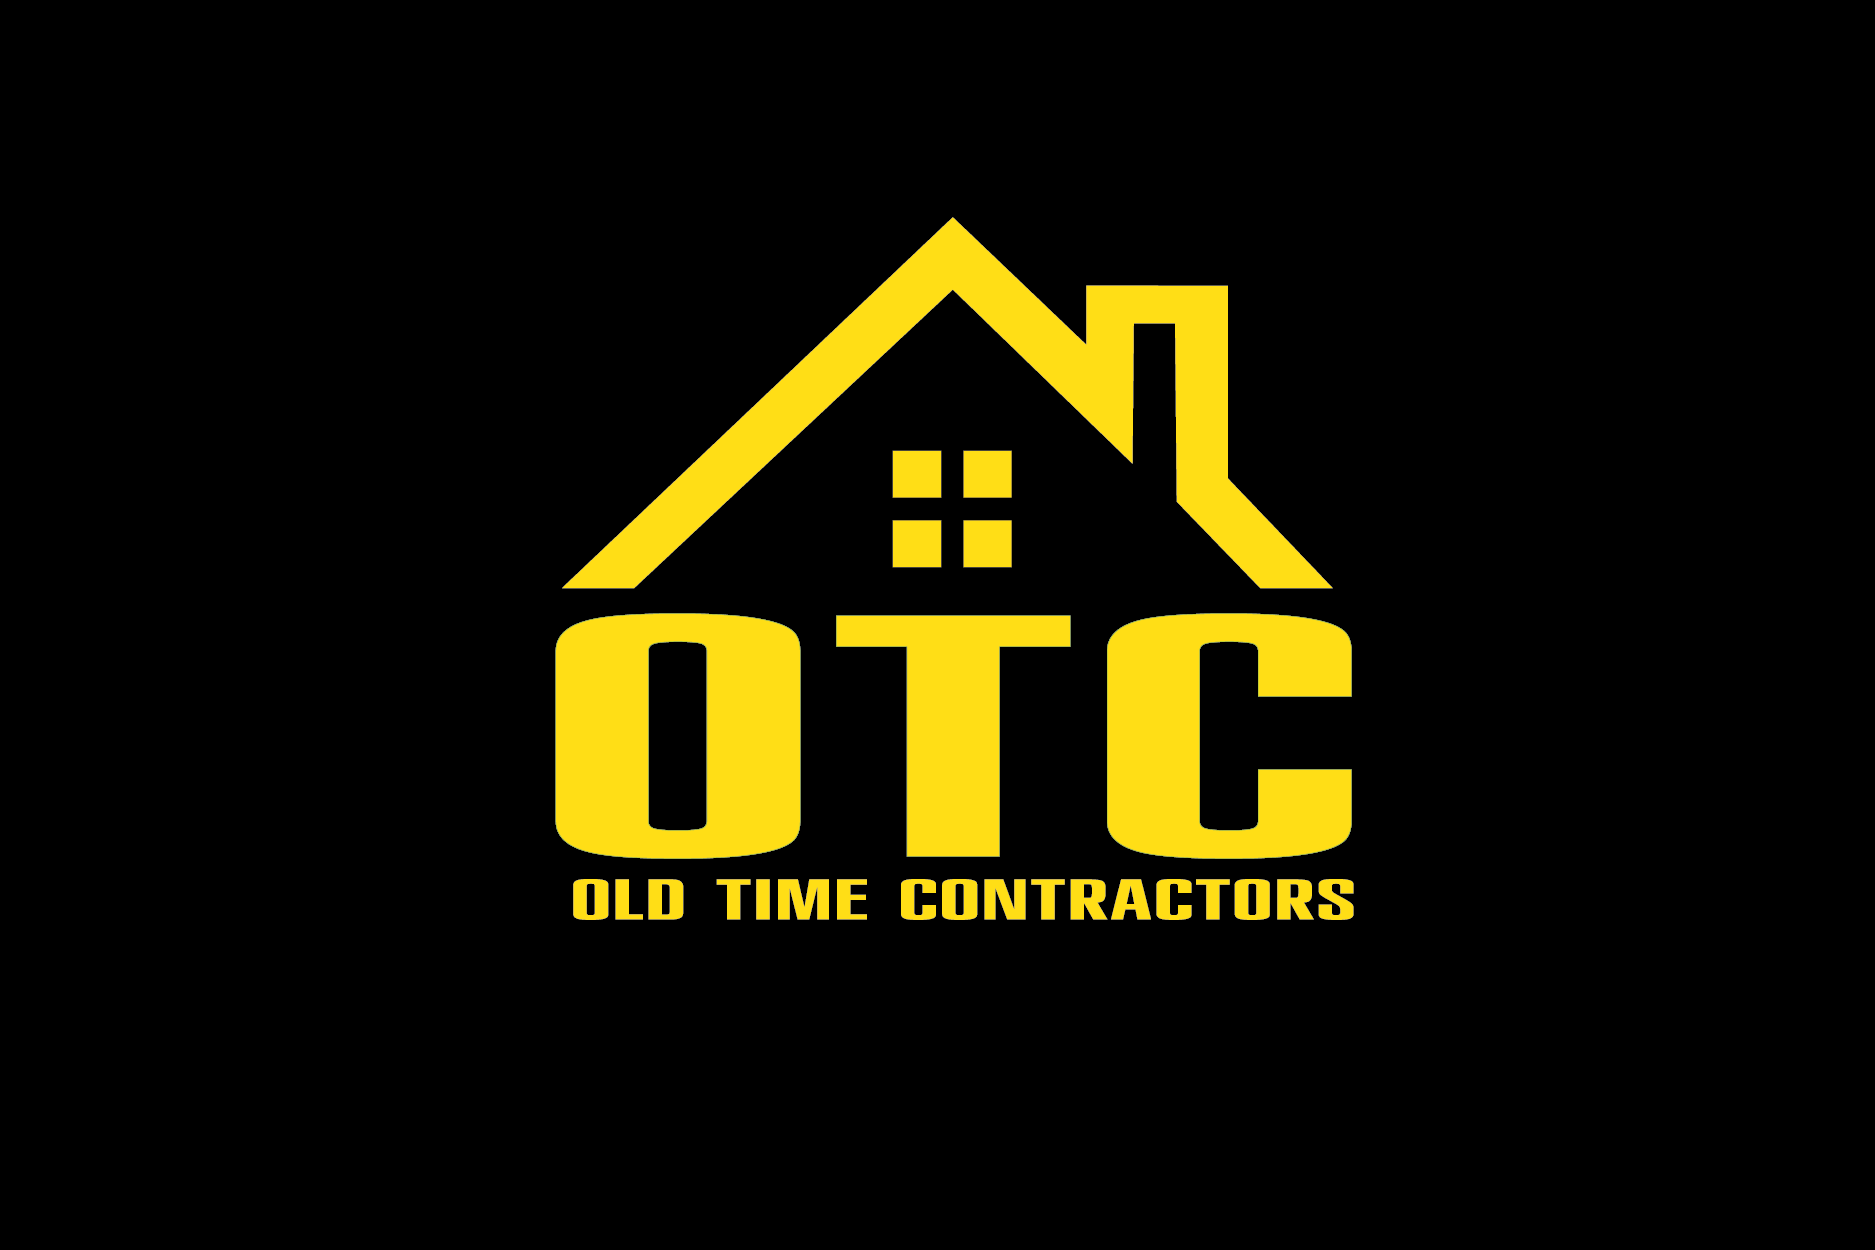 Logo Design by Moin Javed - Entry No. 97 in the Logo Design Contest Old Time Contractors, Inc. (new brand:  OTC, Inc.) Logo Design.